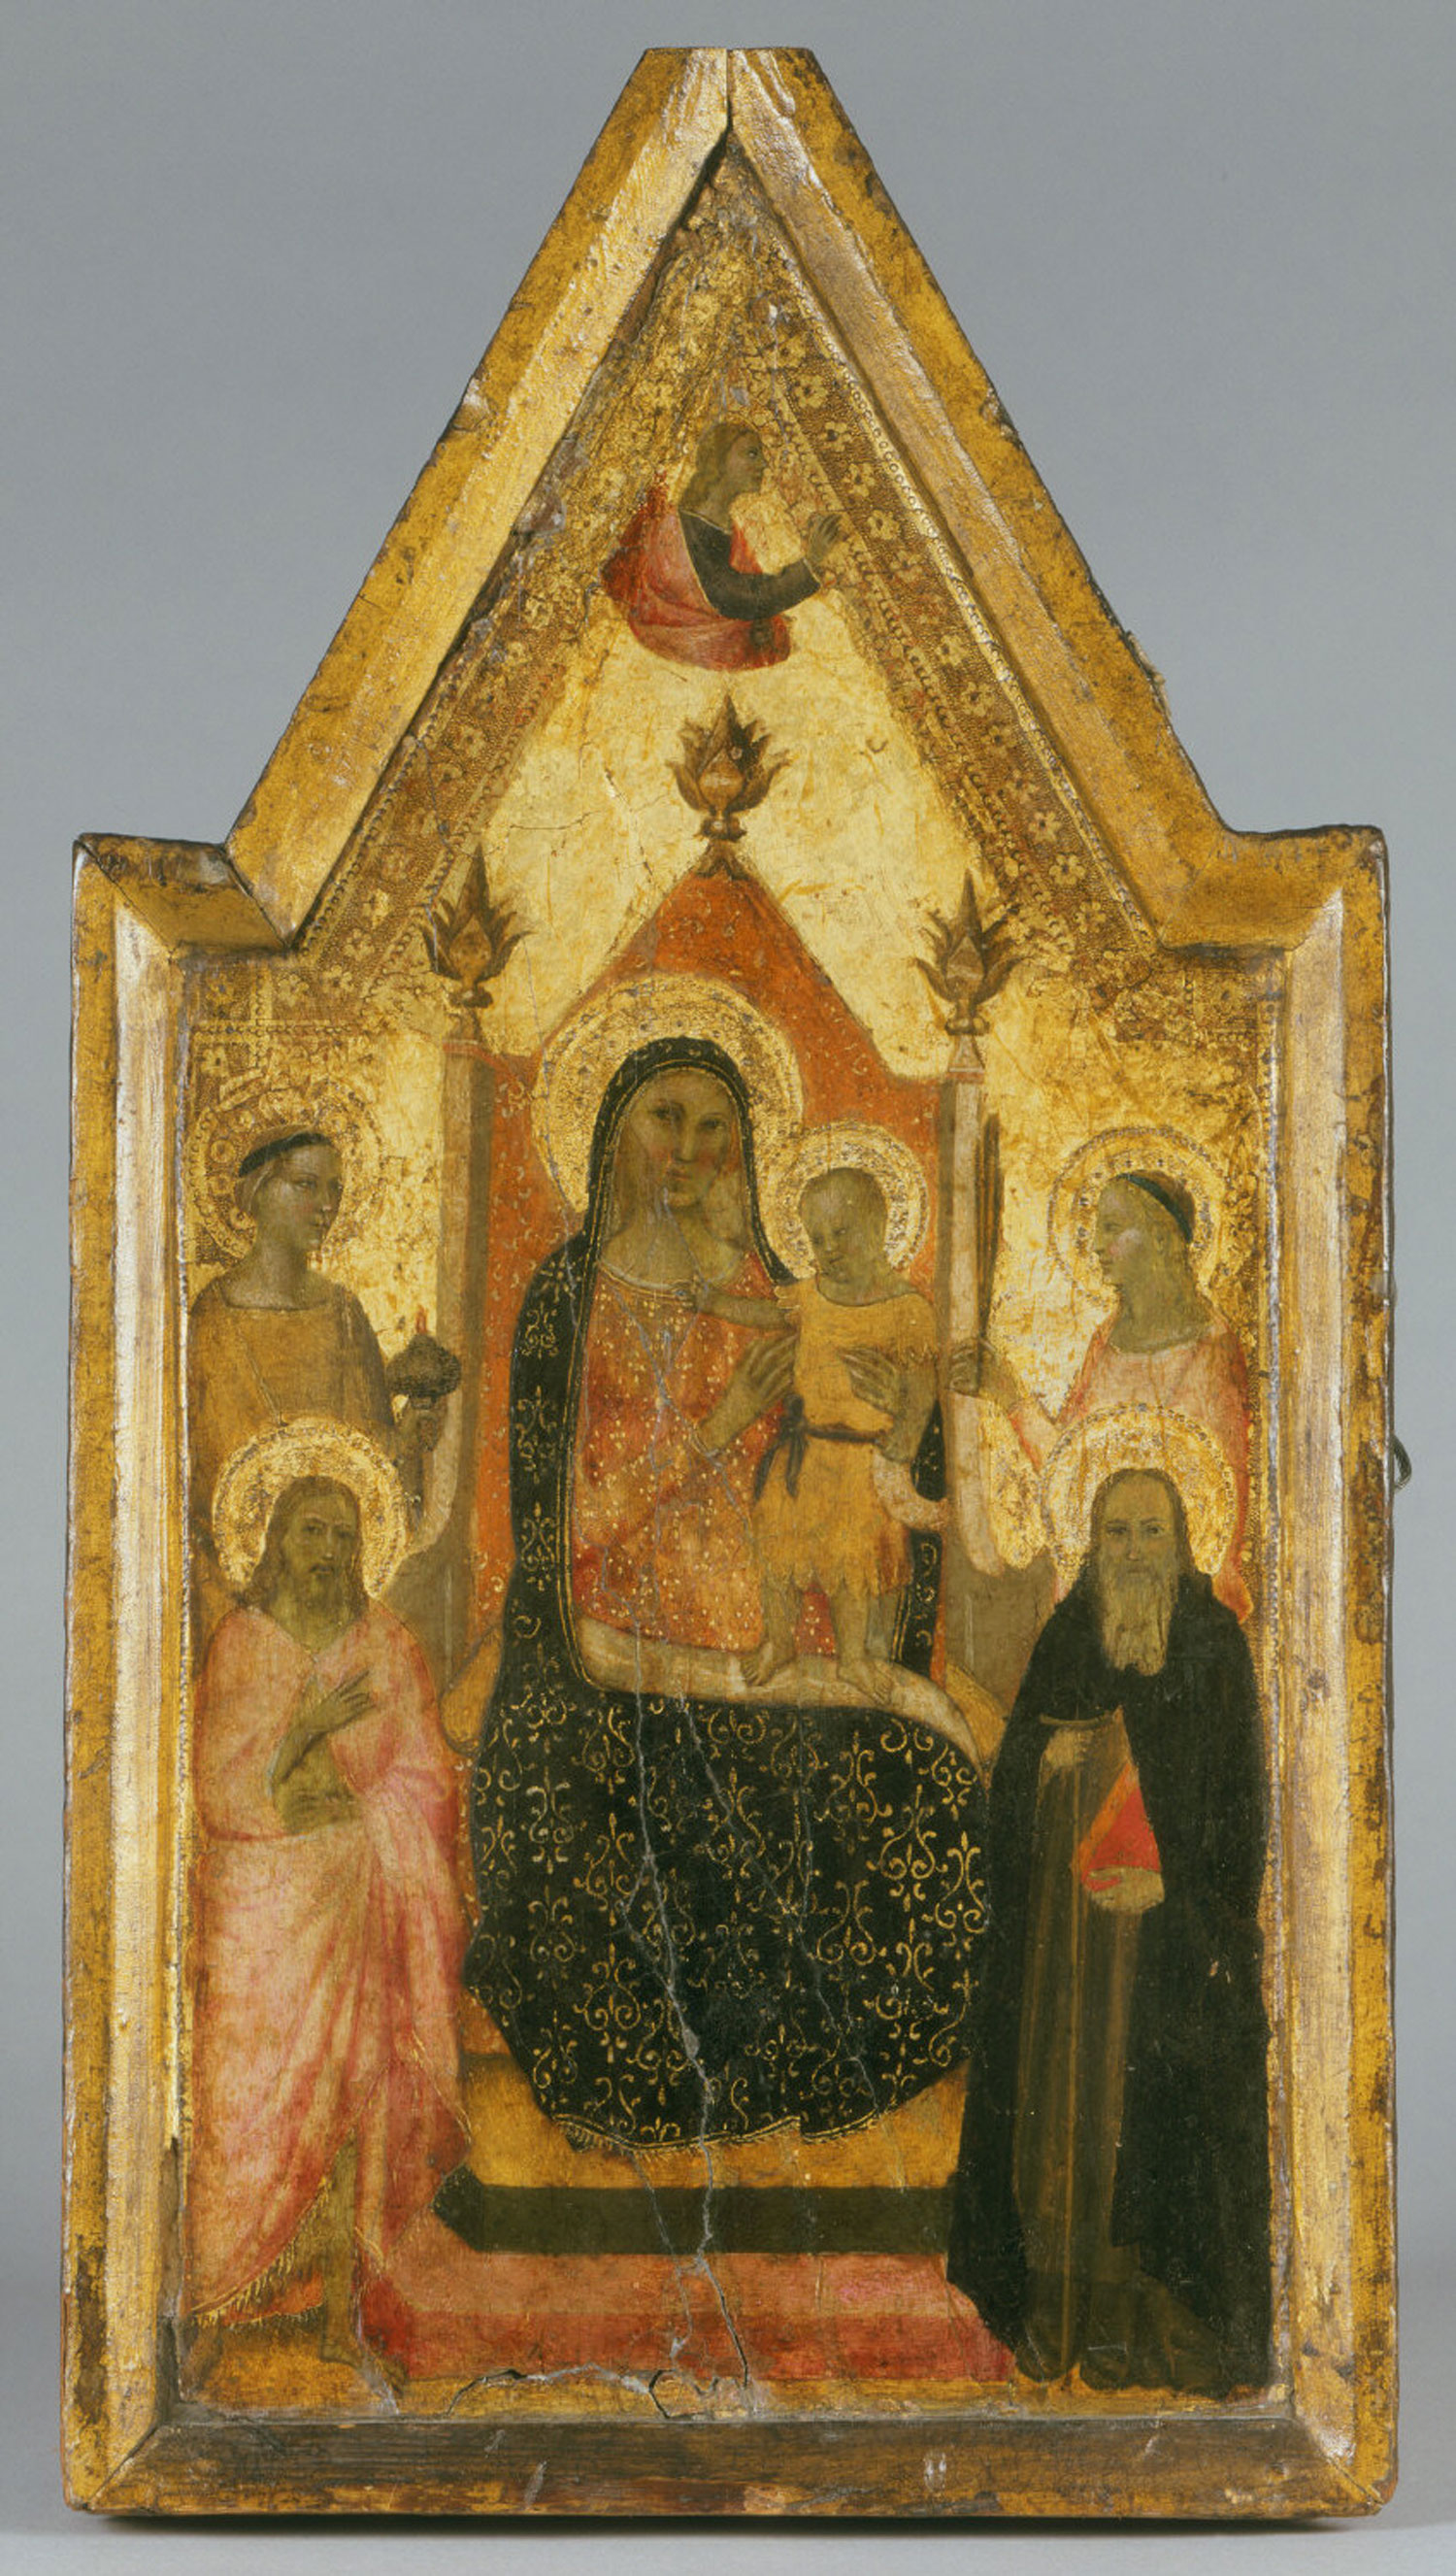 Virgin and Child Enthroned with Saints Lucy, John the Baptist, and Anthony Abbot, a Female Martyr, and the Annunciate Angel